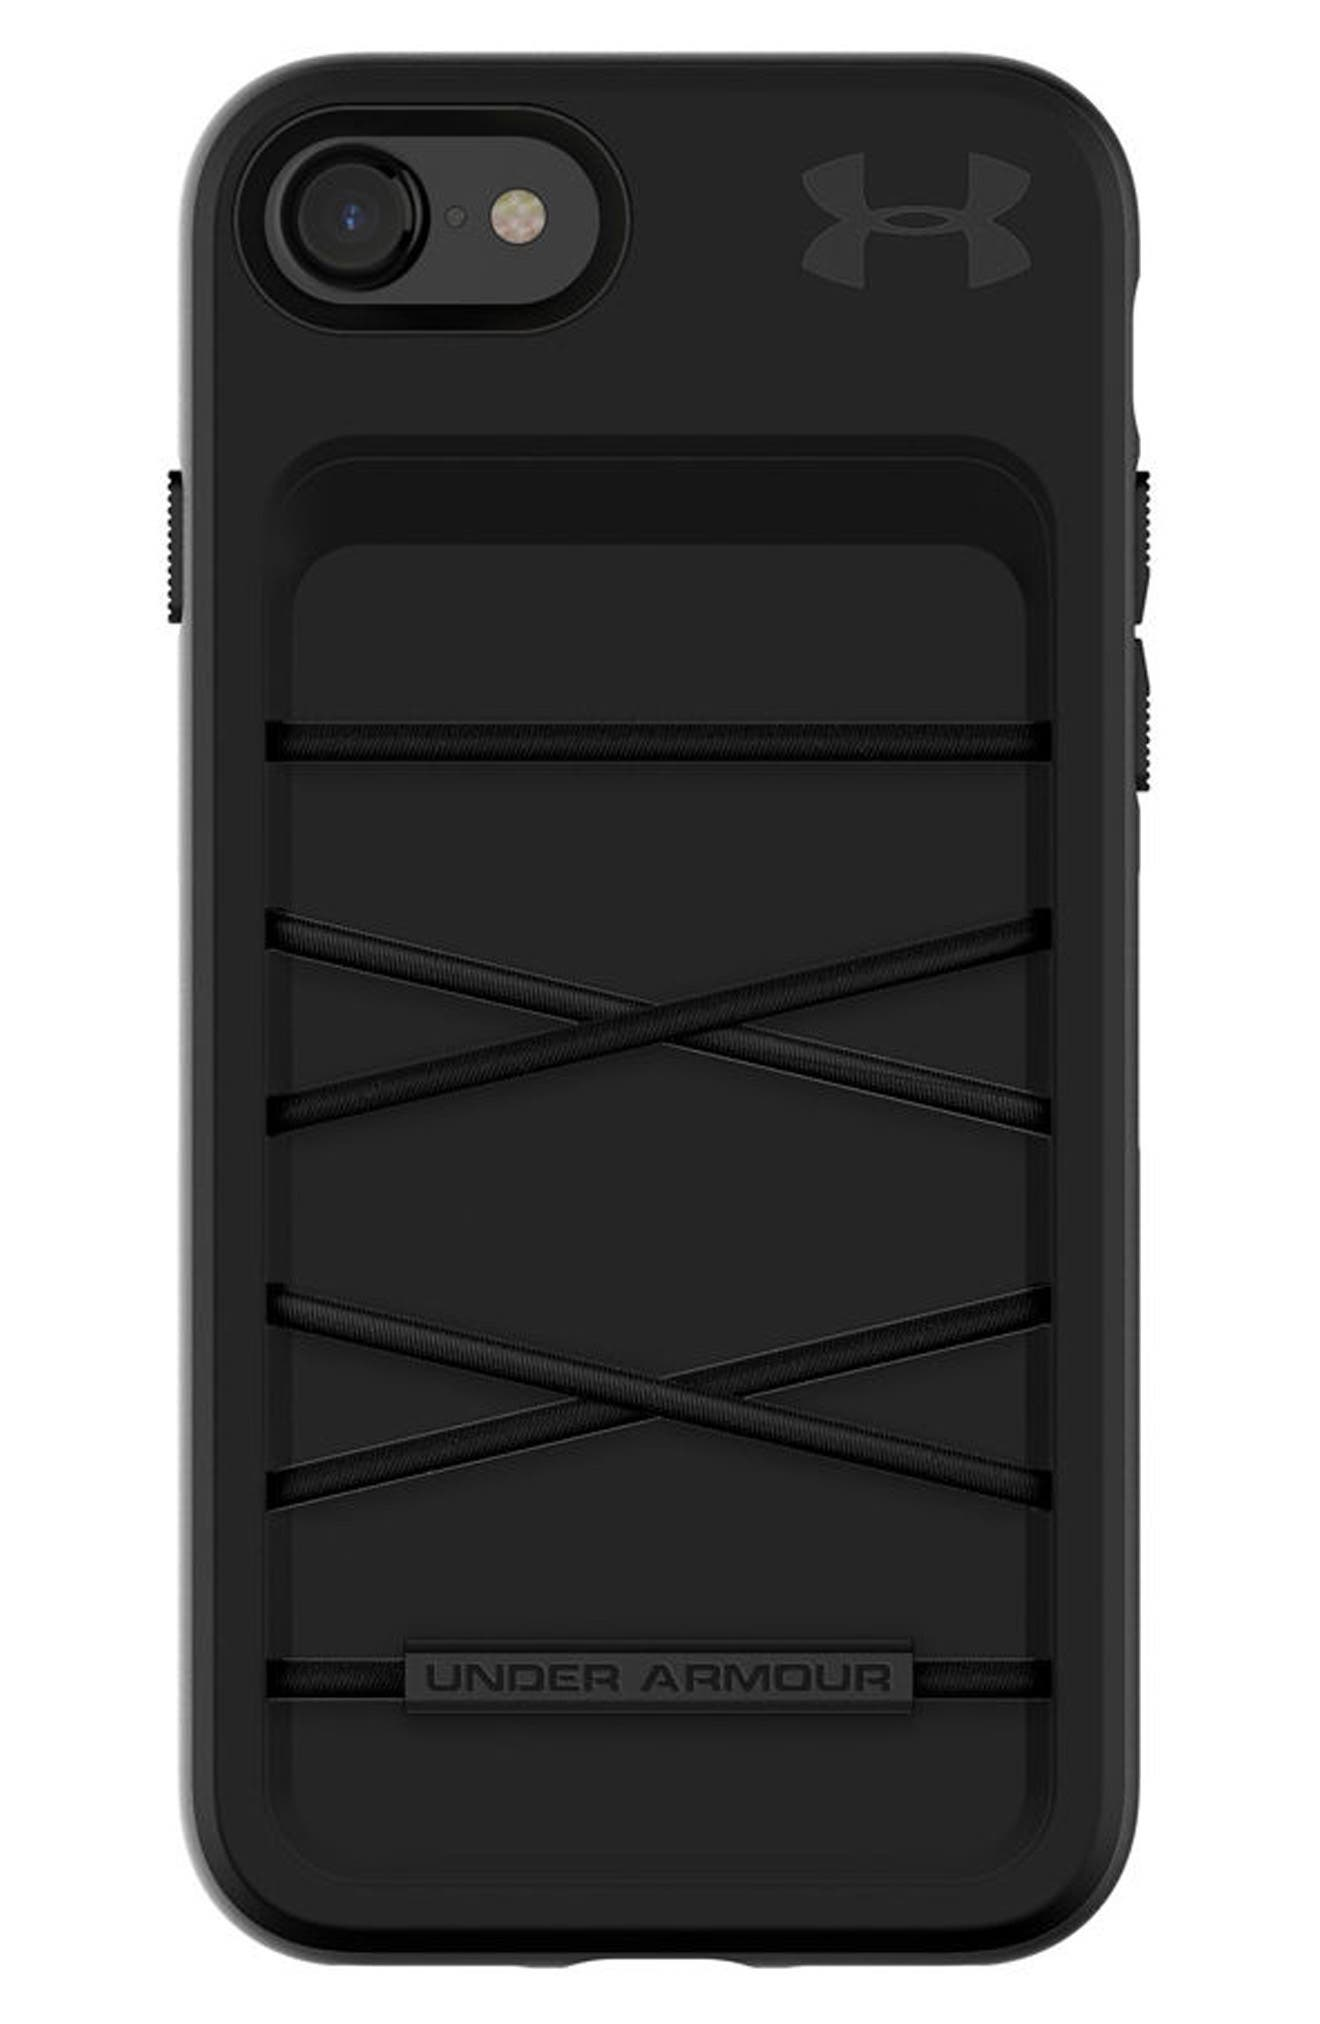 Under Armour Protect Arsenal iPhone 7/8 Case